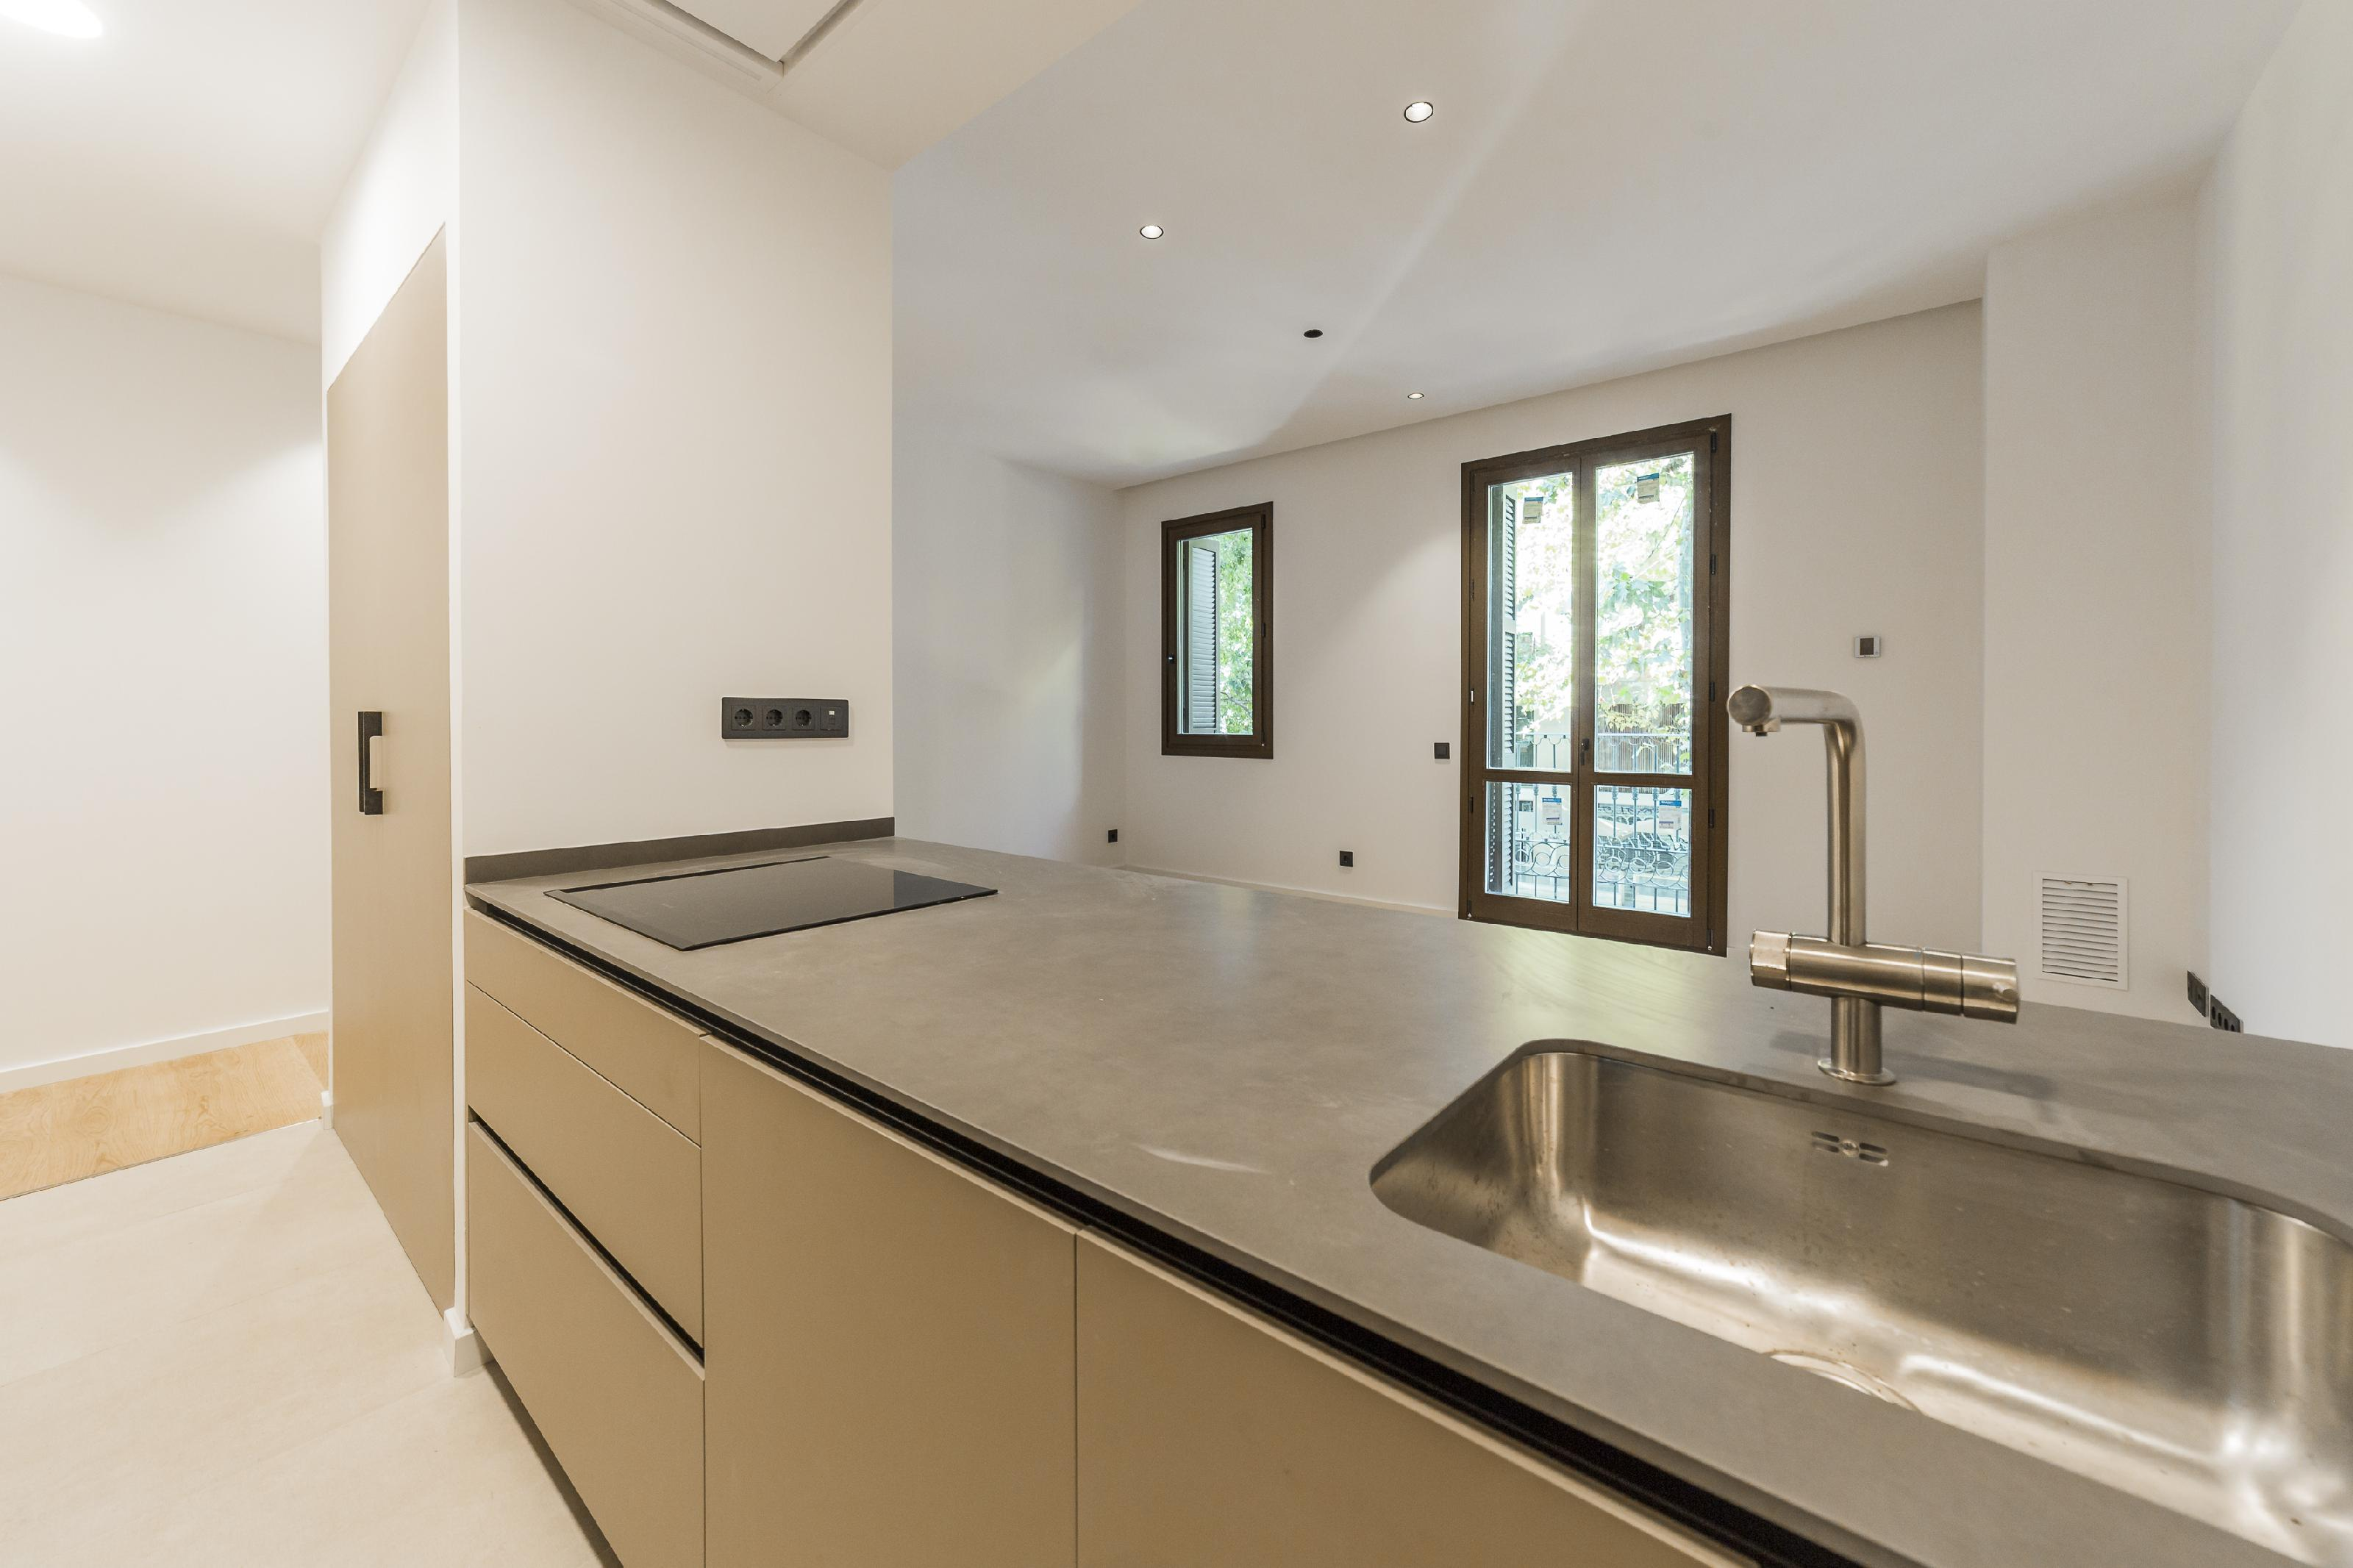 182176 Apartment for sale in Eixample, Old Left Eixample 11